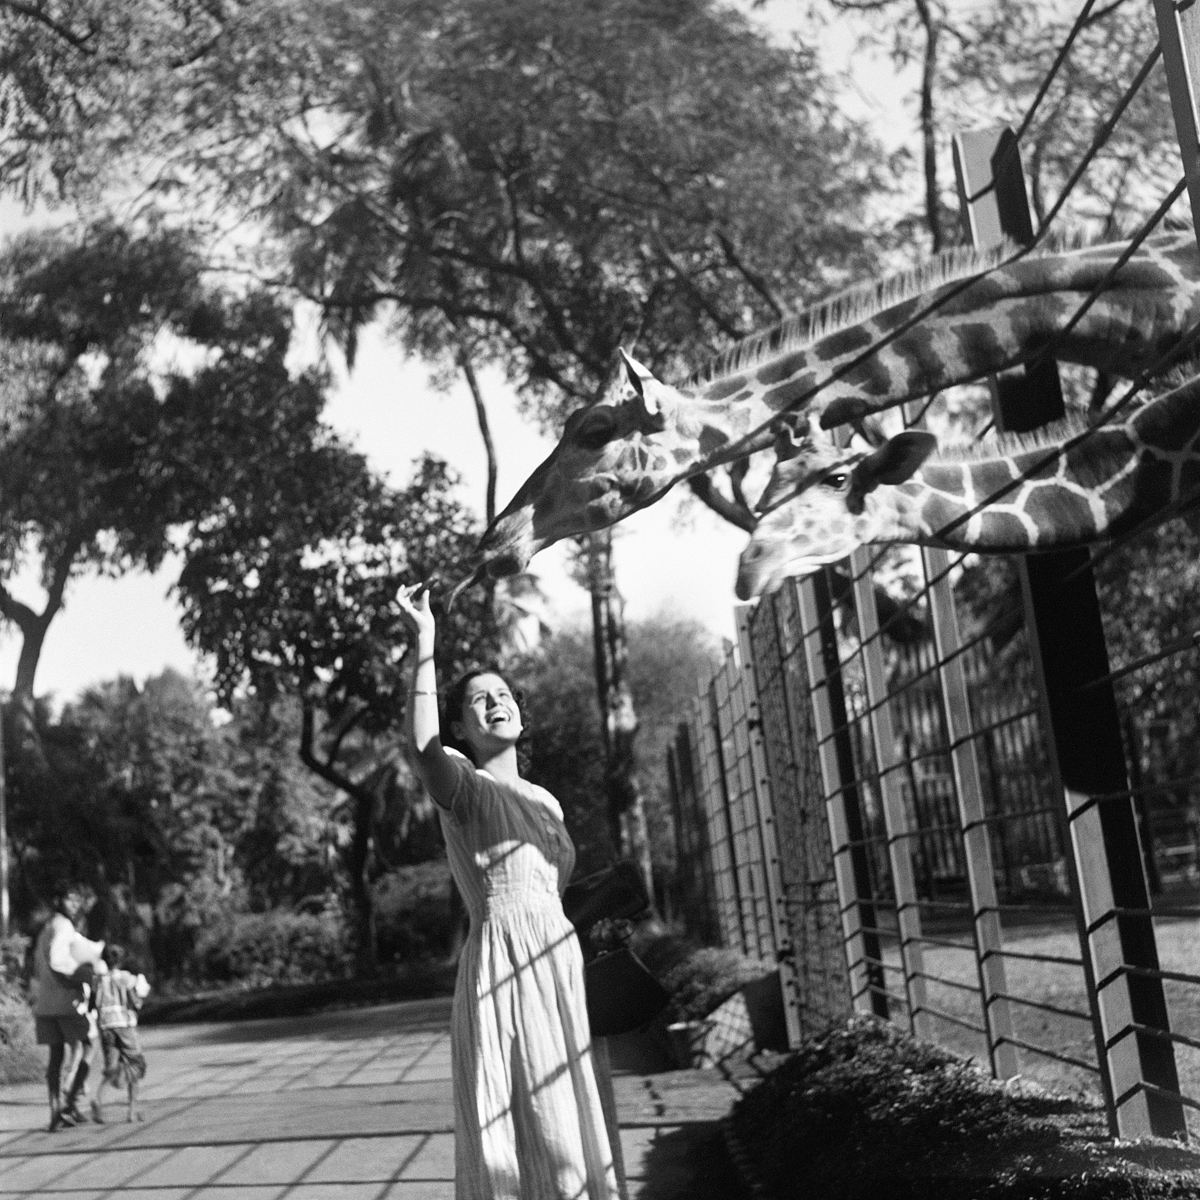 The Bombay Zoo, Late 1930s, Homai Vyarawalla. A woman is seen feeding giraffes at a zoo, she's smiling and wearing a light dress. Image is black and white.